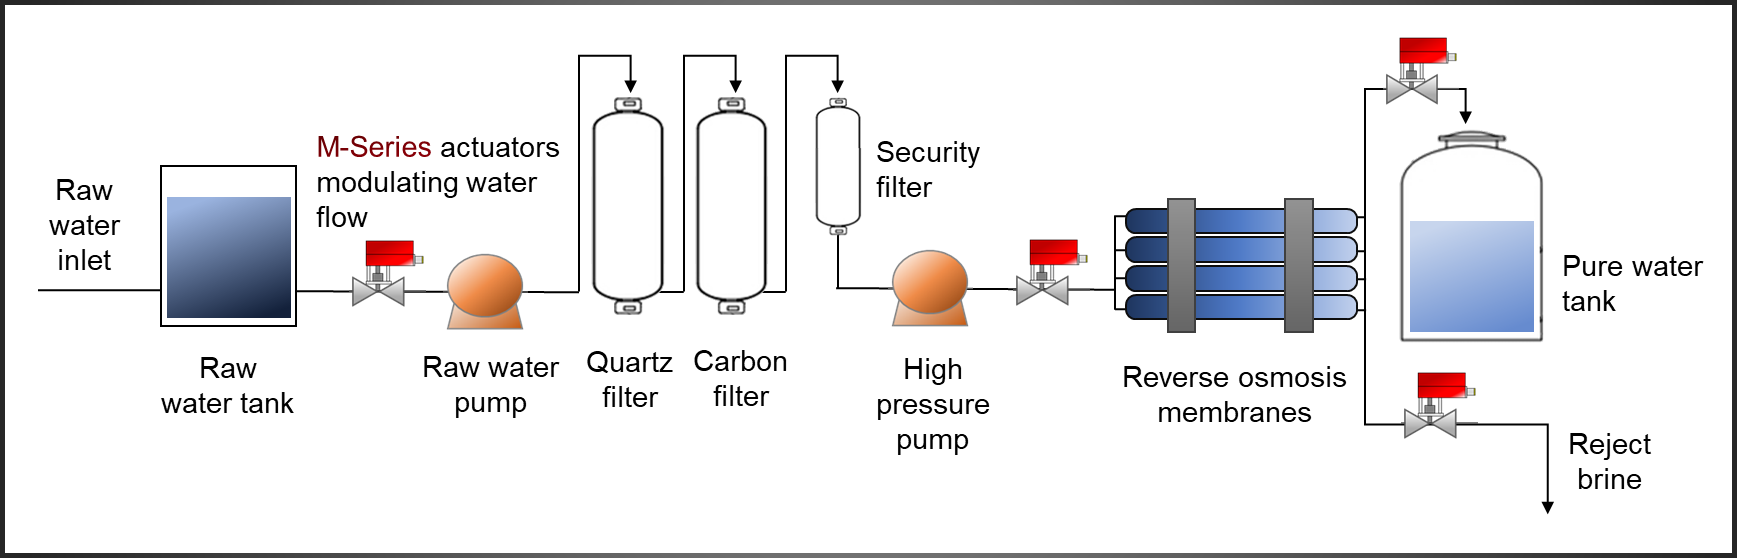 Hanbay Reverse Osmosis Applications Actuator Schematic Diagram Description The Above Depicts A Simplified Of System Equipped With M Series Valve Actuators